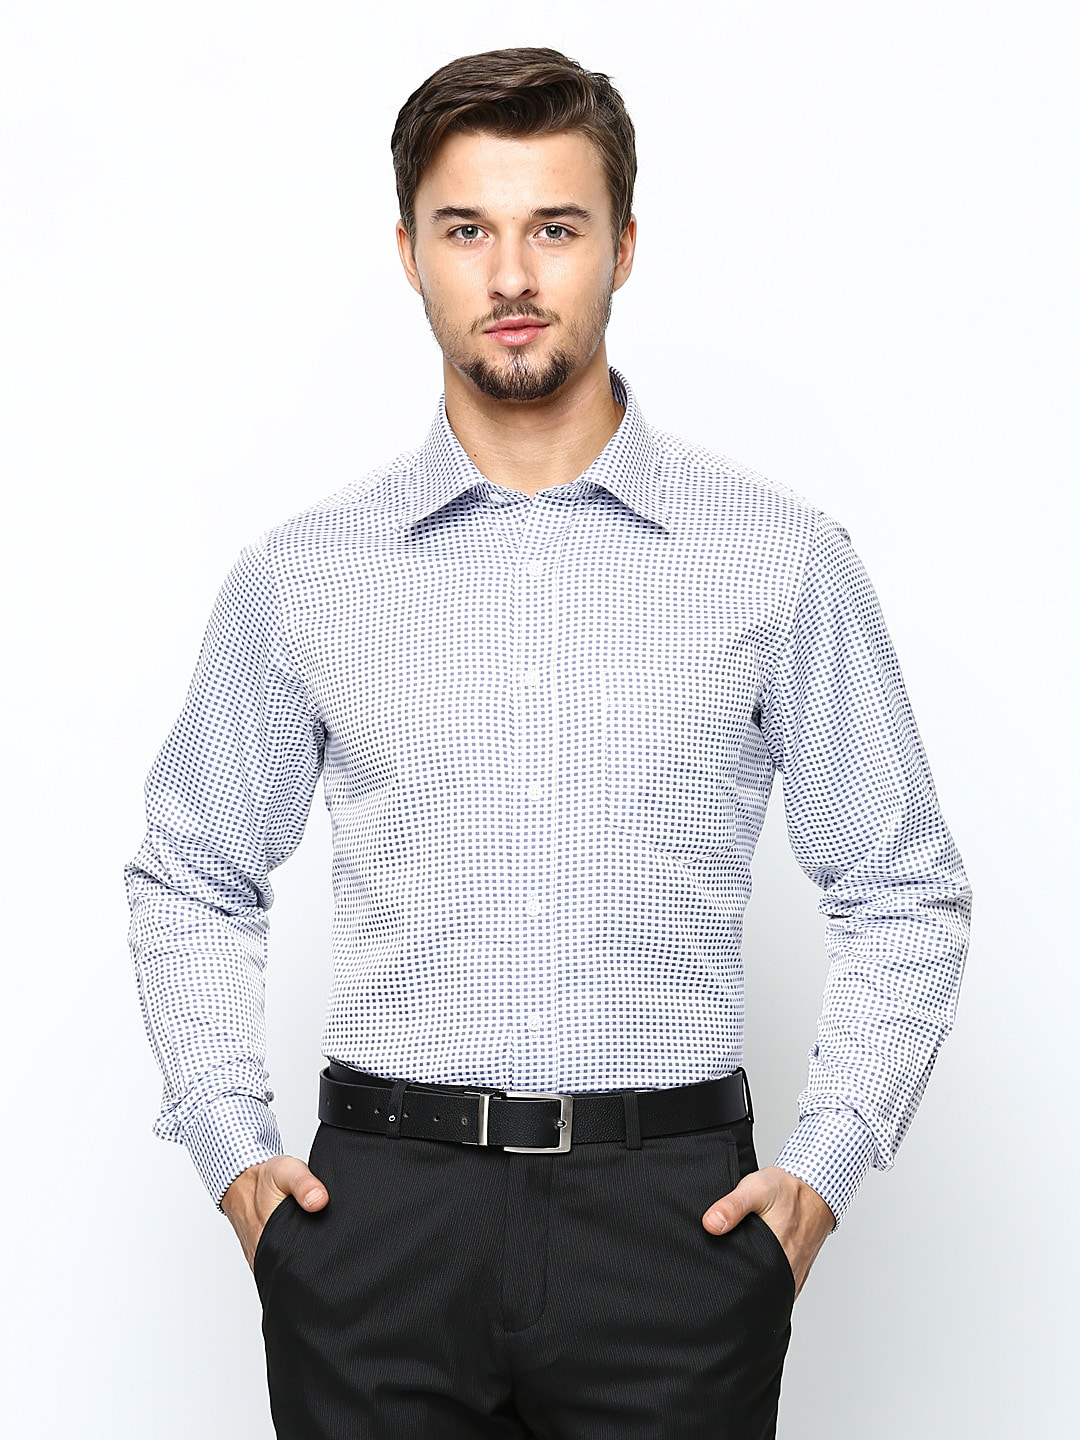 Oxemberg Oxemberg Men Blue & White Checked Slim Fit Formal Shirt (Multicolor)